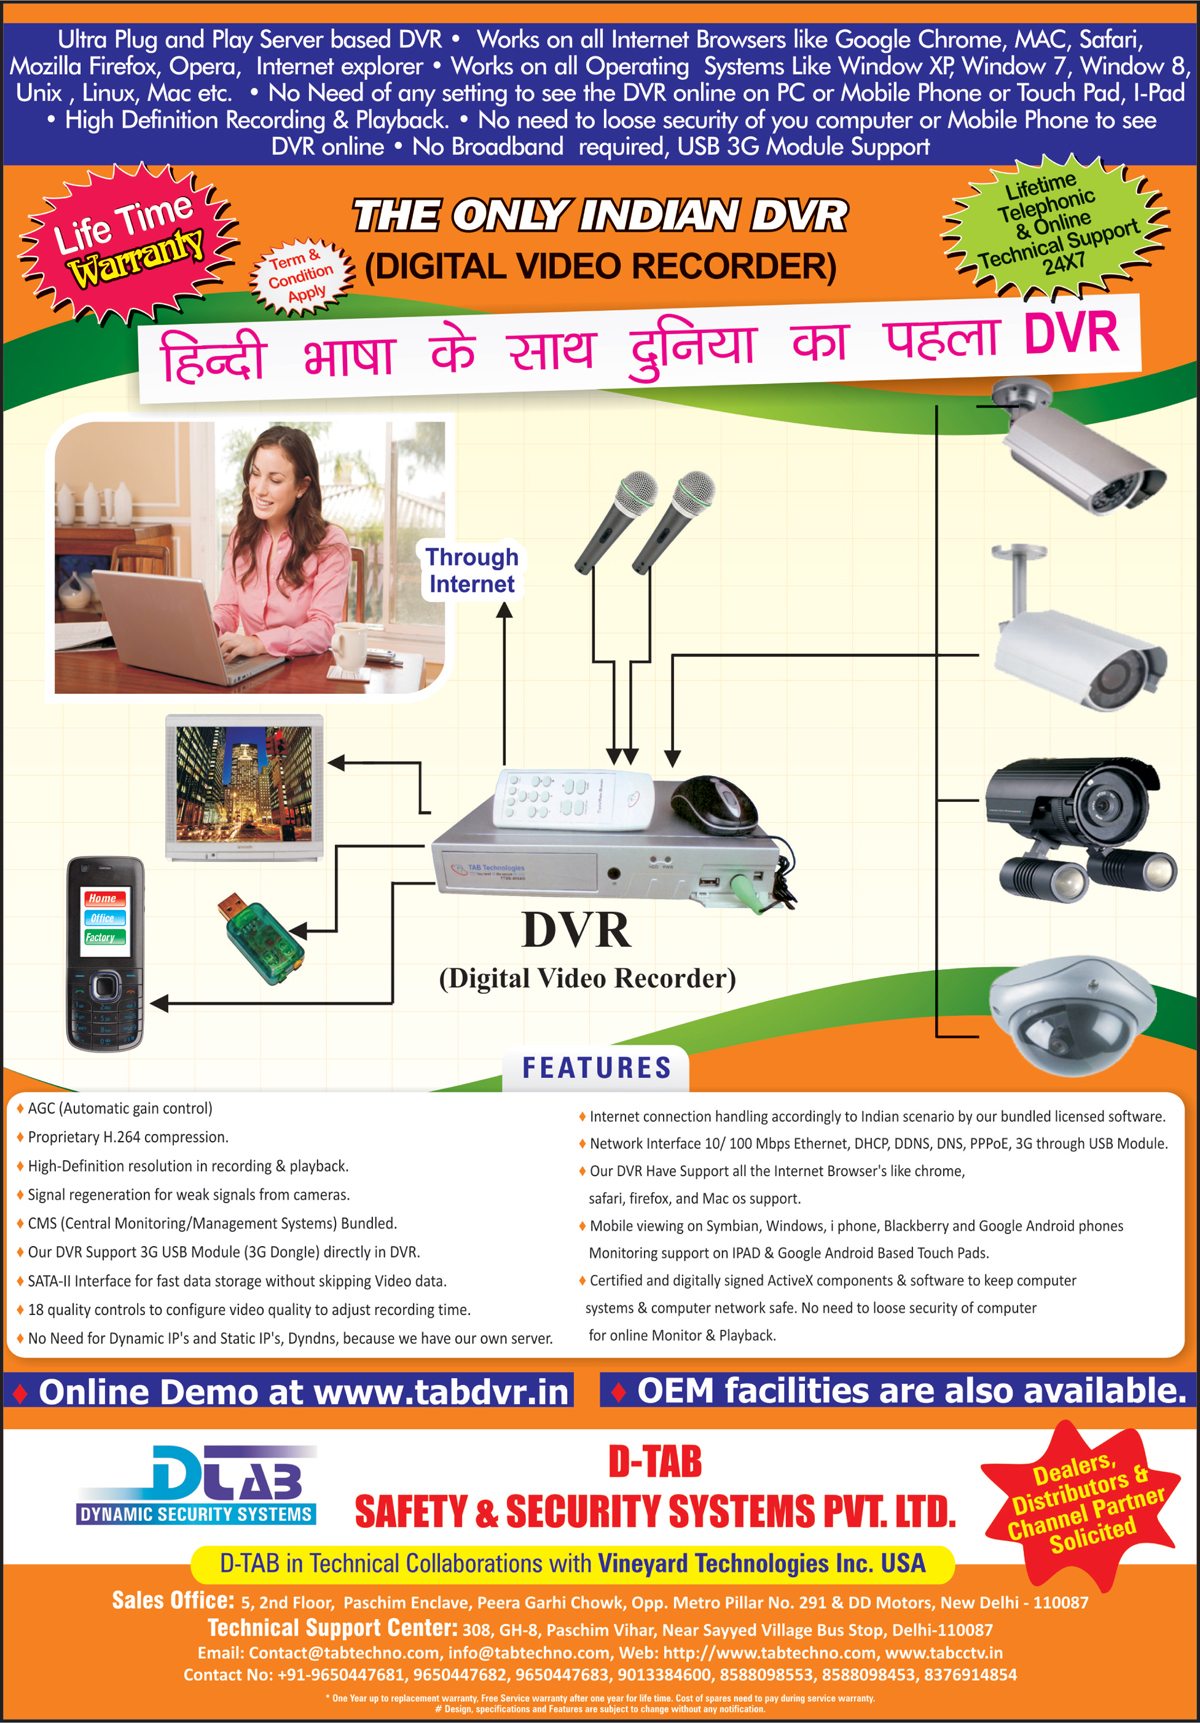 CCTV Systems, CCTV Cameras, DVR, Digital Video Recorders,Cctv Solutions, Surveillance Systems